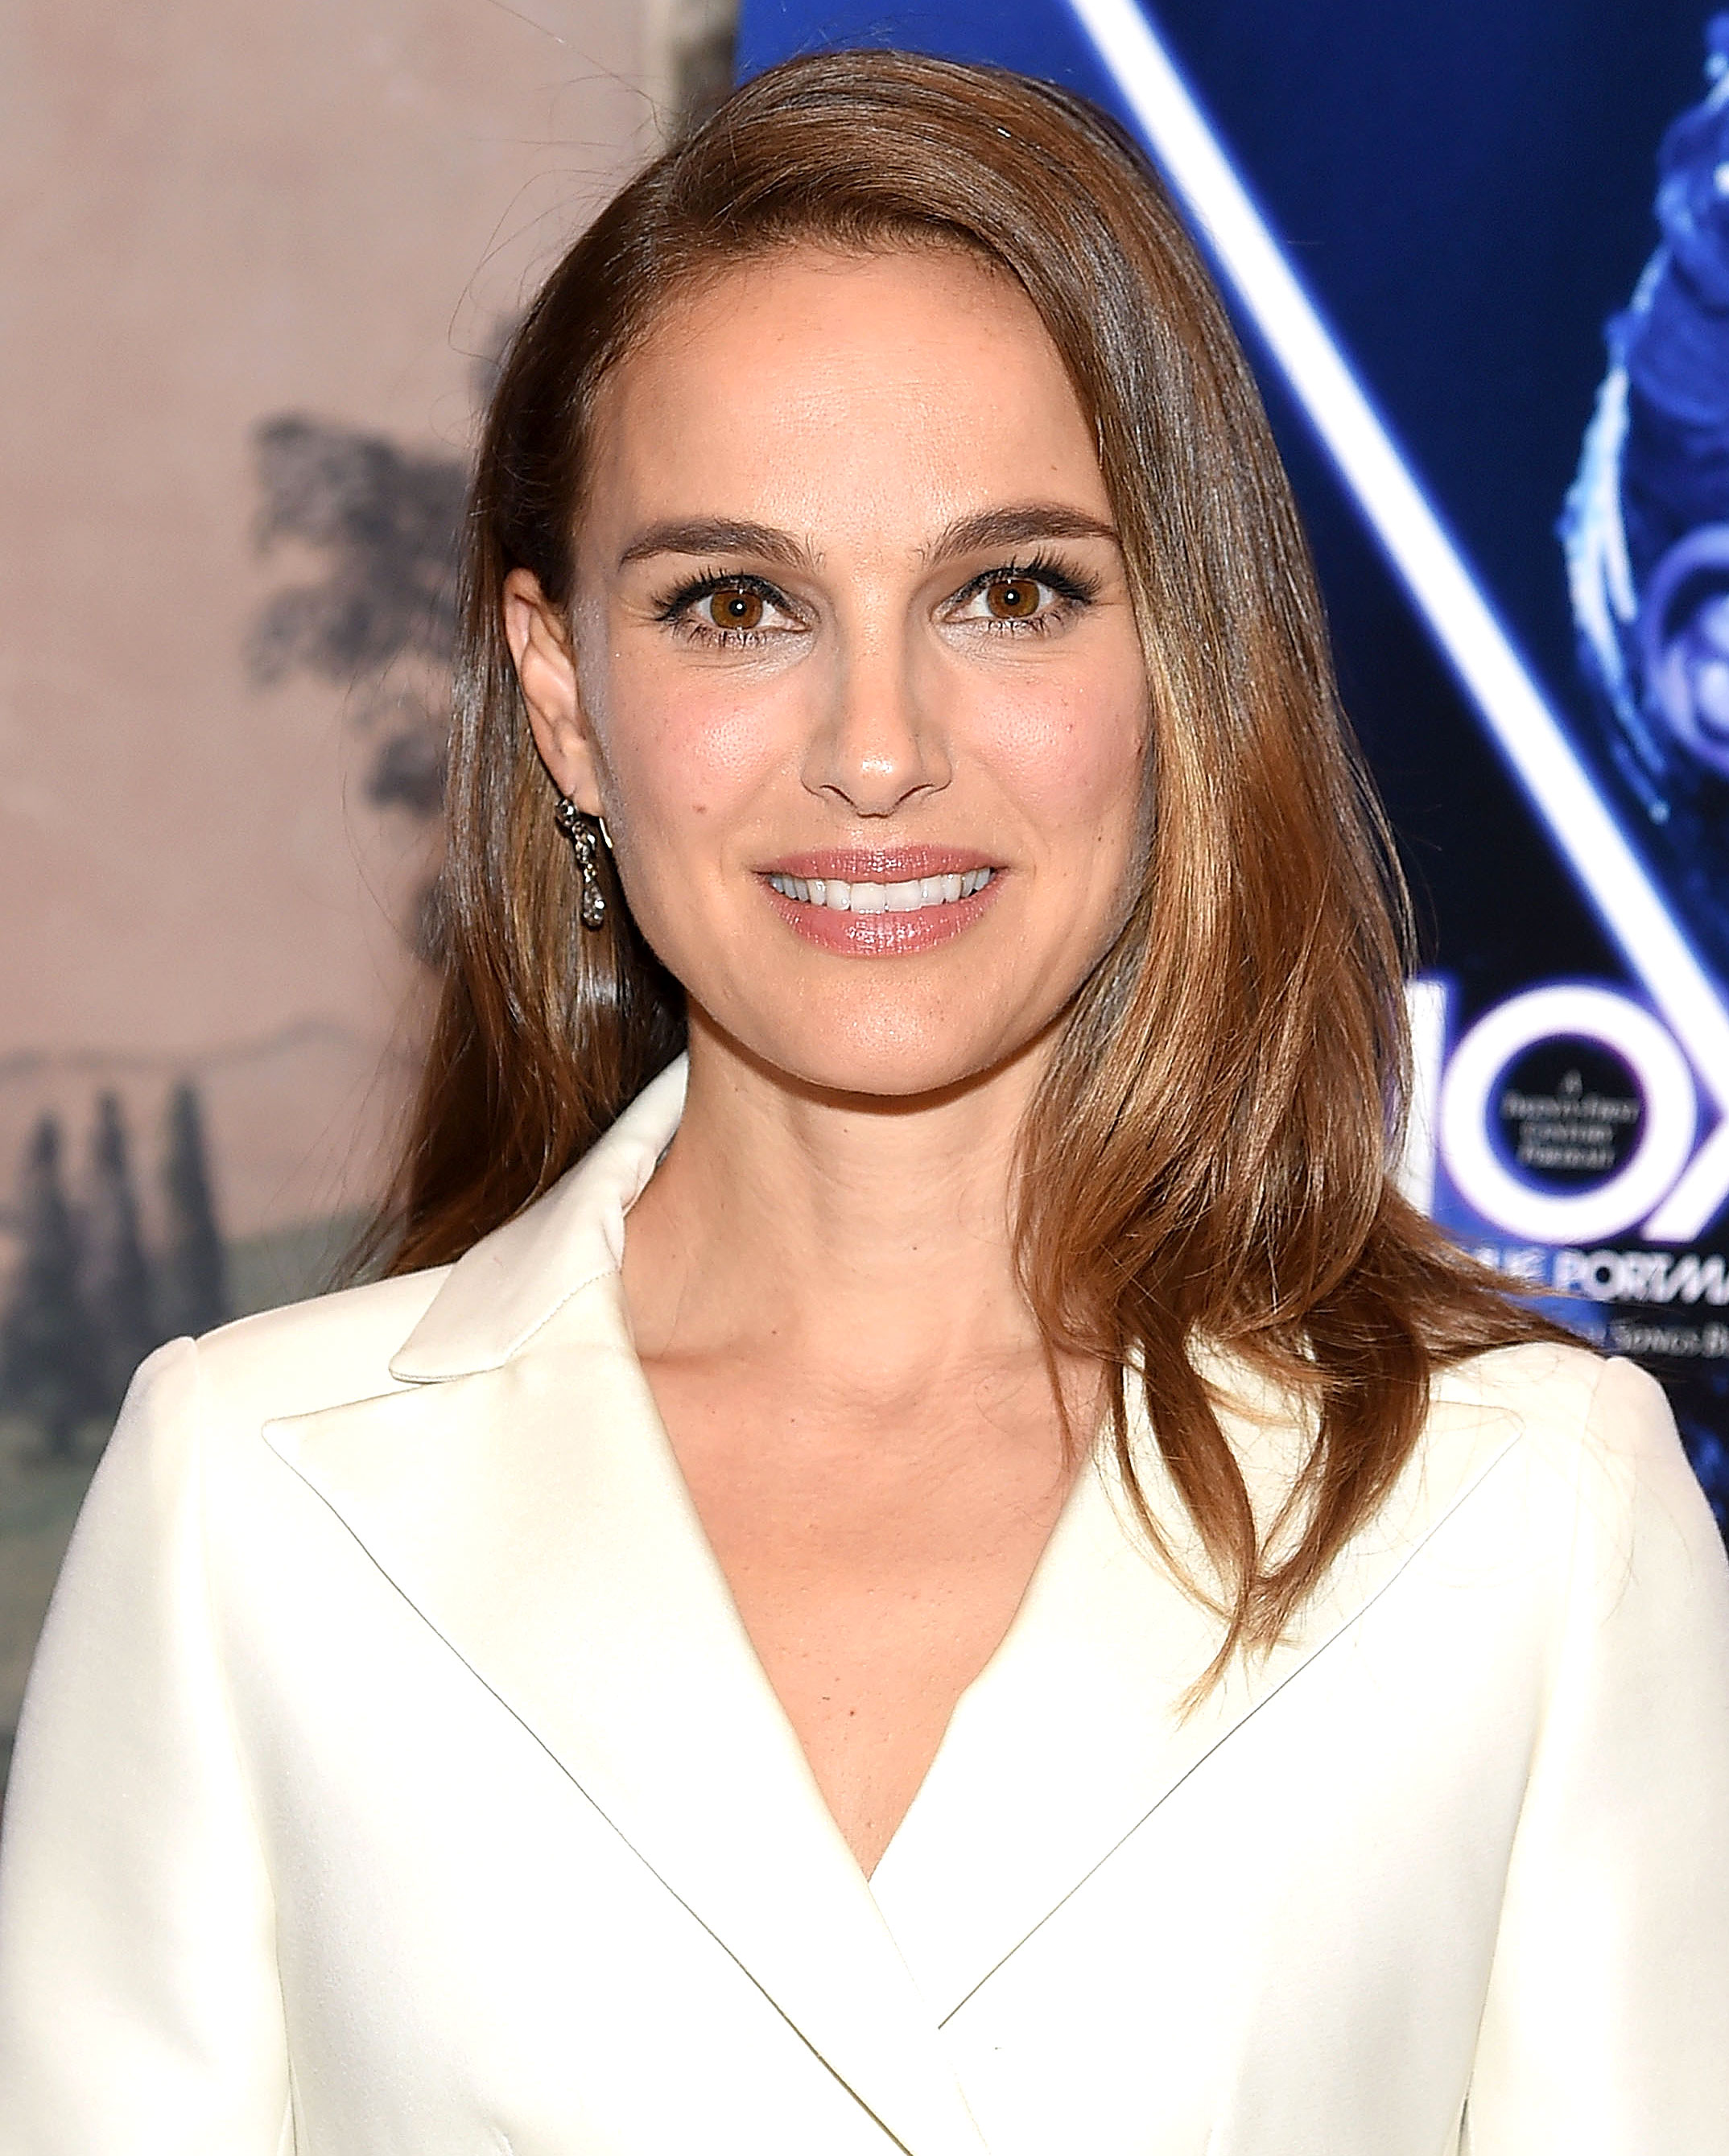 natalie-portman-side-hair-part - While you may be conditioned to believe a perfectly sculpted complexion requires dozens of products, makeup artist Quinn Murphy gave the actress a natural contour in just two steps at a Vox Lux screening in NYC on Thursday, December 13. On Instagram, he shared that he first applied a sheer veil of the Dior Backstage Face & Body Foundation to even out her skin tone, before swapping blush for bronzer and using the DiorSkin Mineral Nude Bronze 003 along her temples, in the hollows of the cheek and on the tip of the chin for a sun kissed effect.